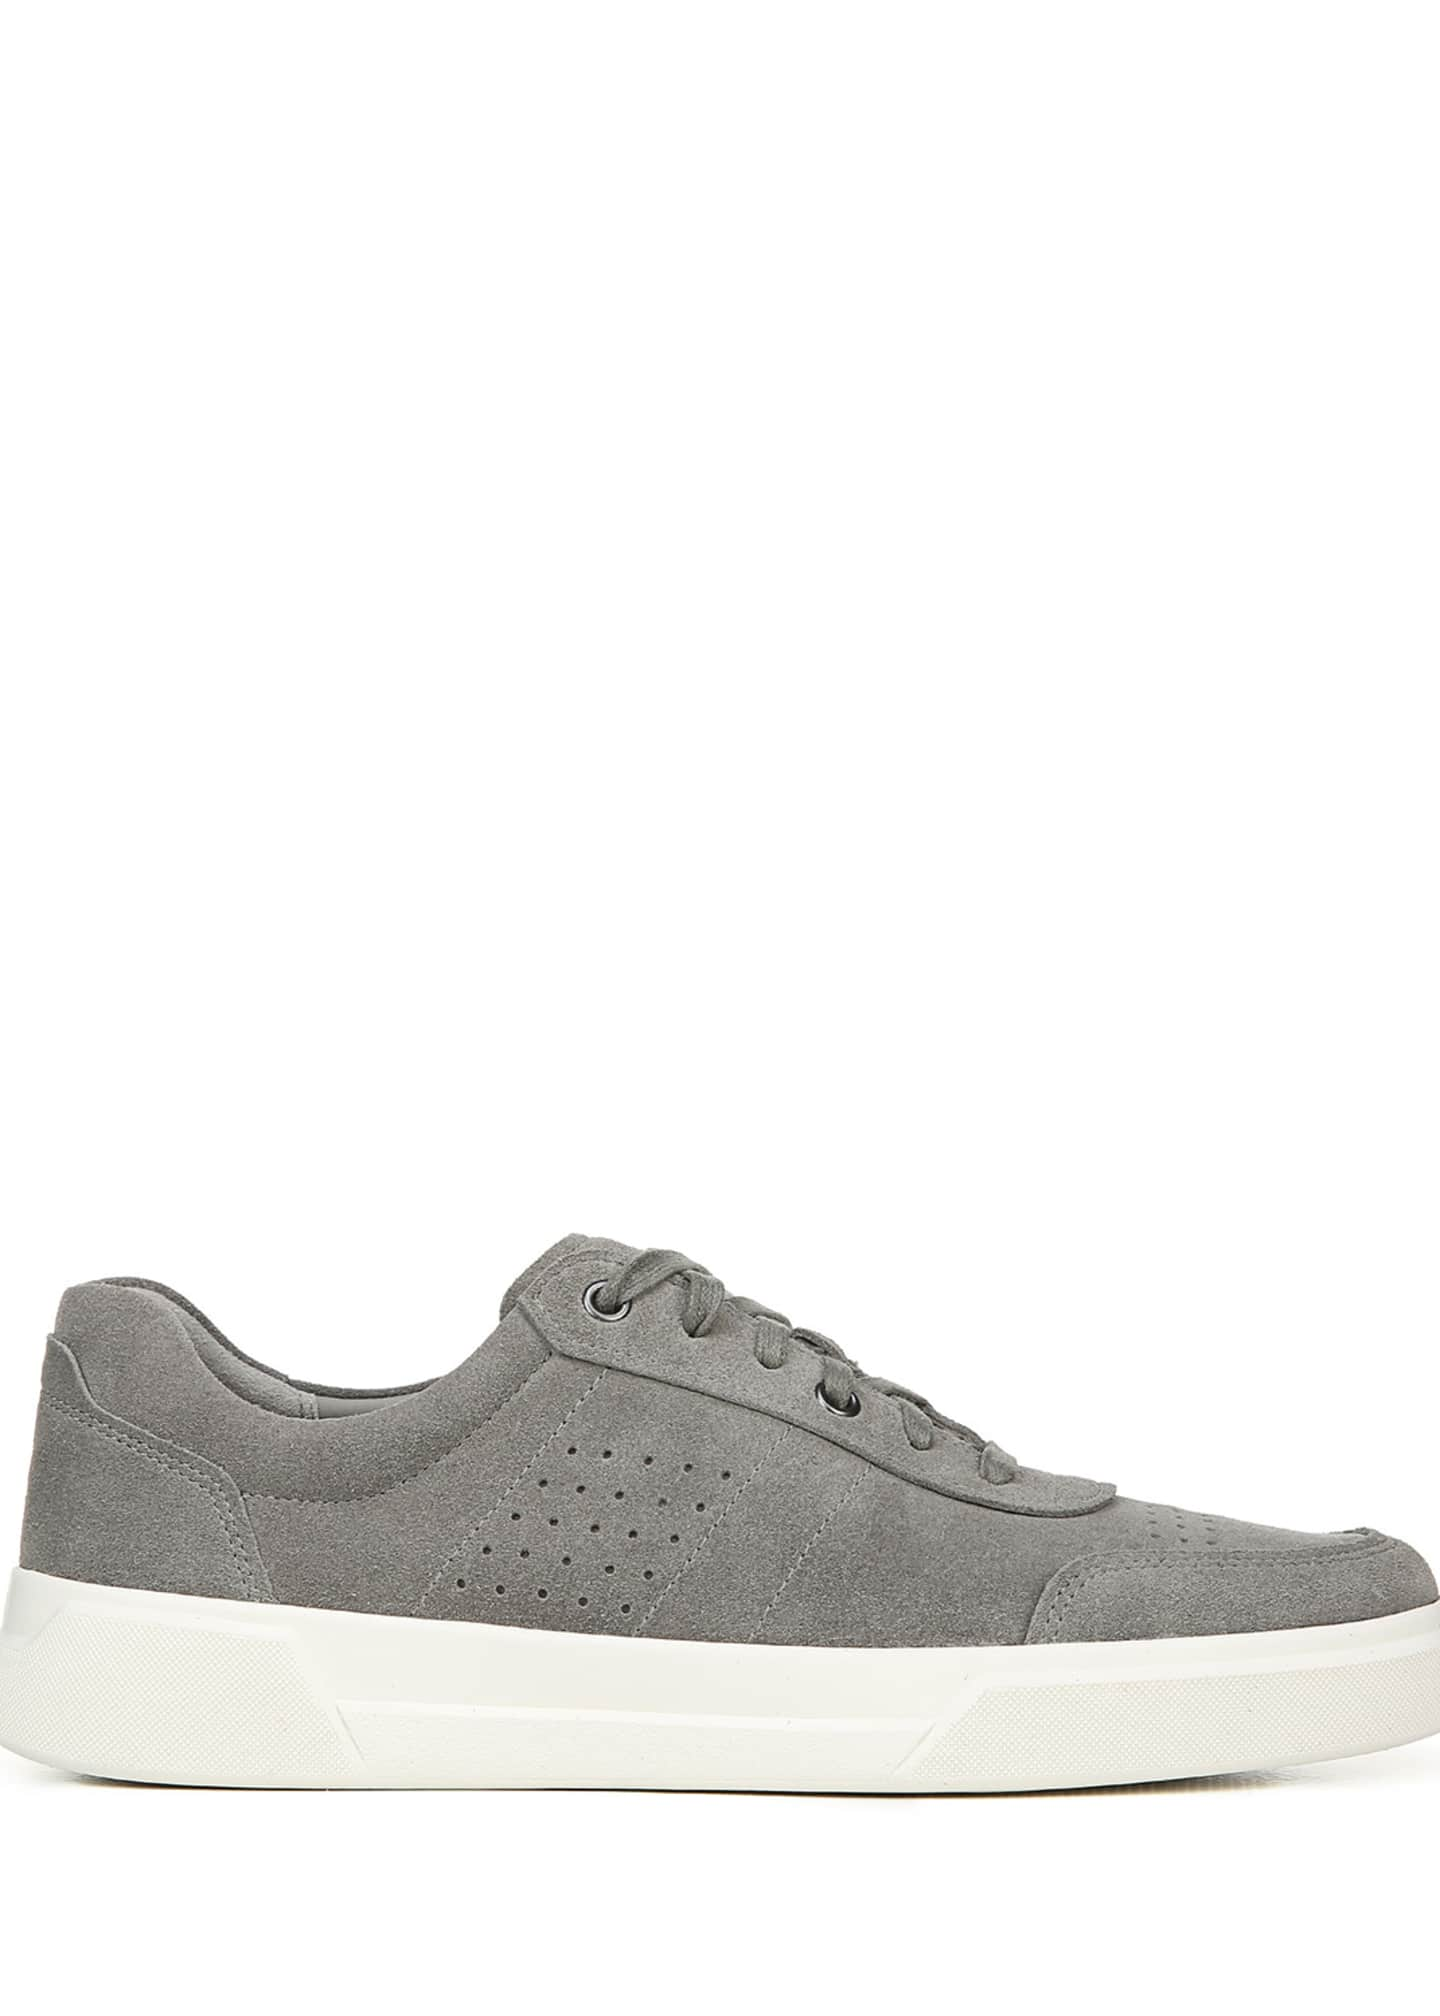 Image 3 of 5: Men's Barnett Perforated Suede Low-Top Sneakers